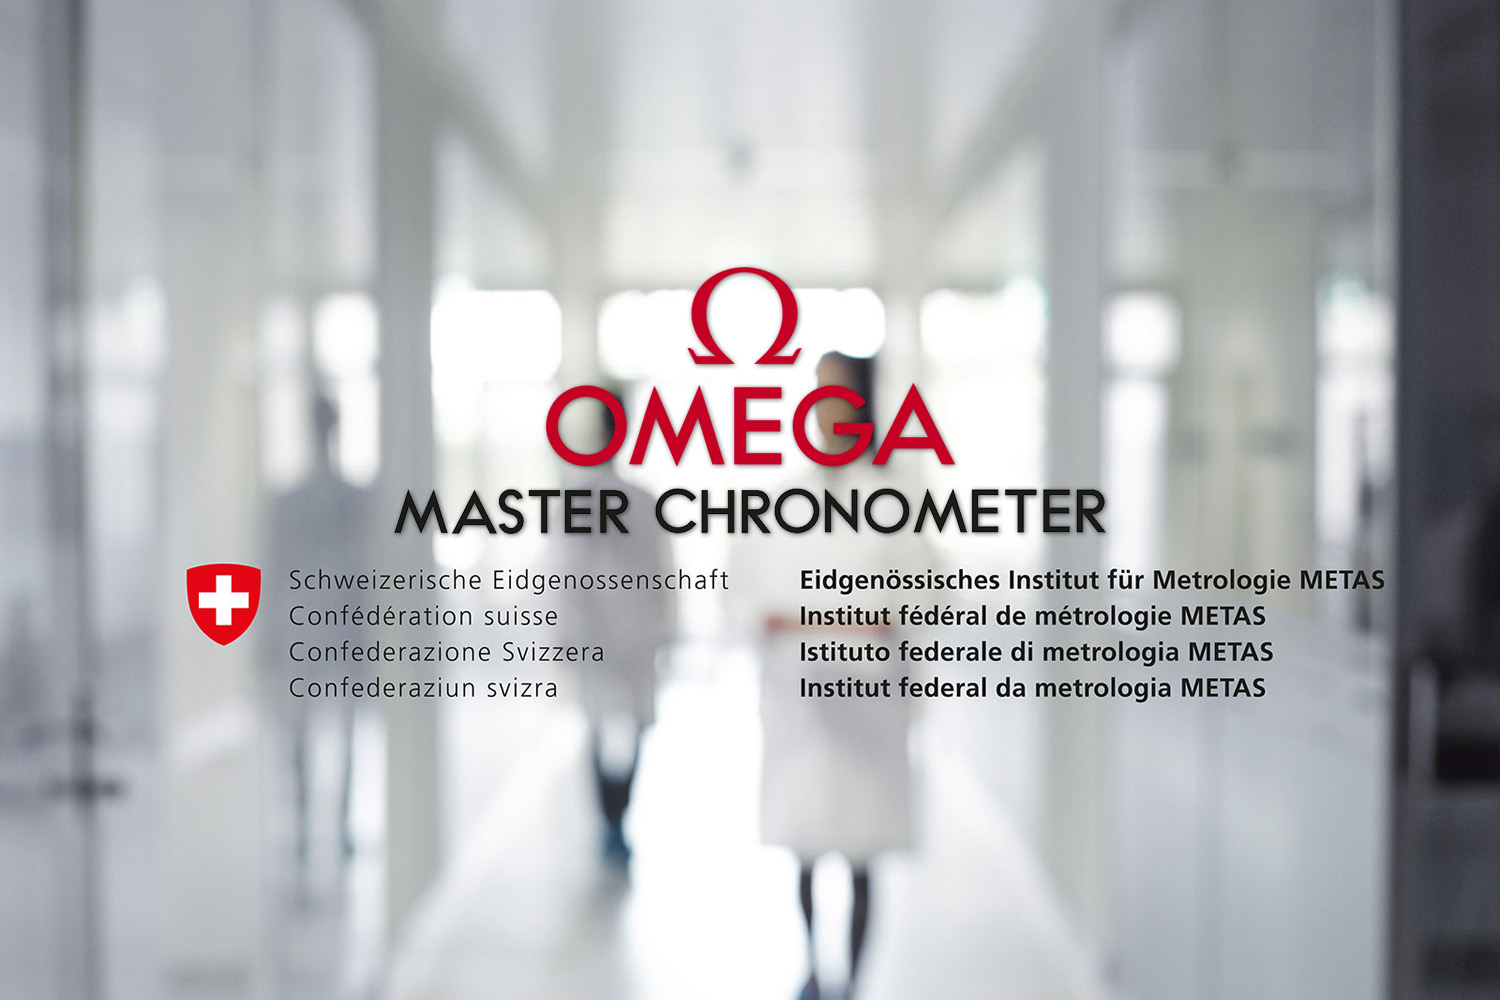 Inside Omega Master Chronometer METAS facilities